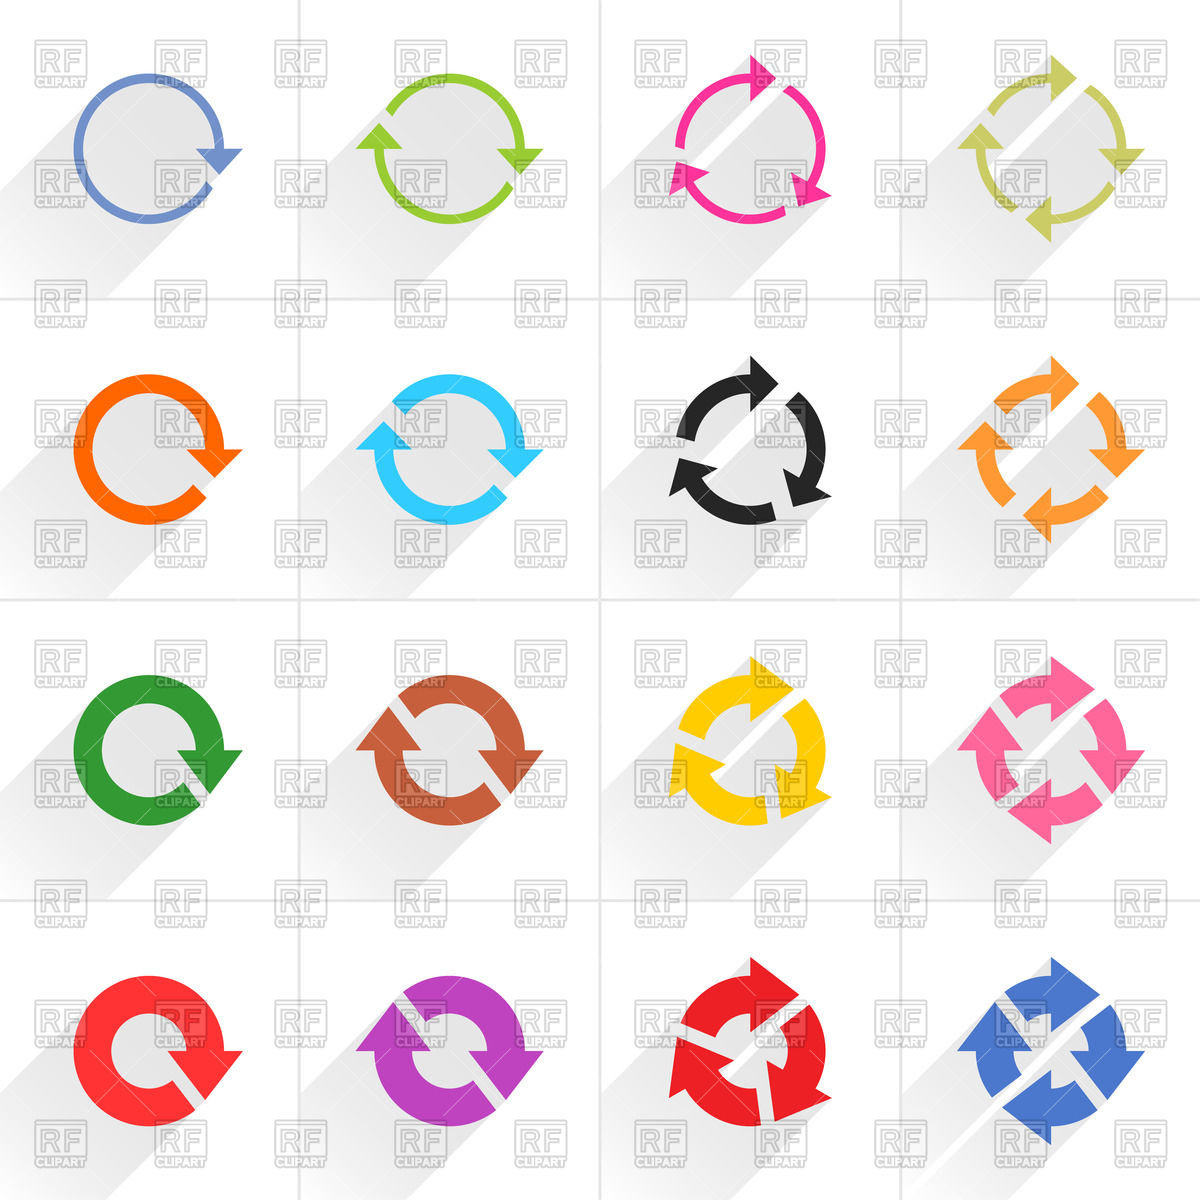 Cycle clipart rotation. Flat style round arrows png transparent download